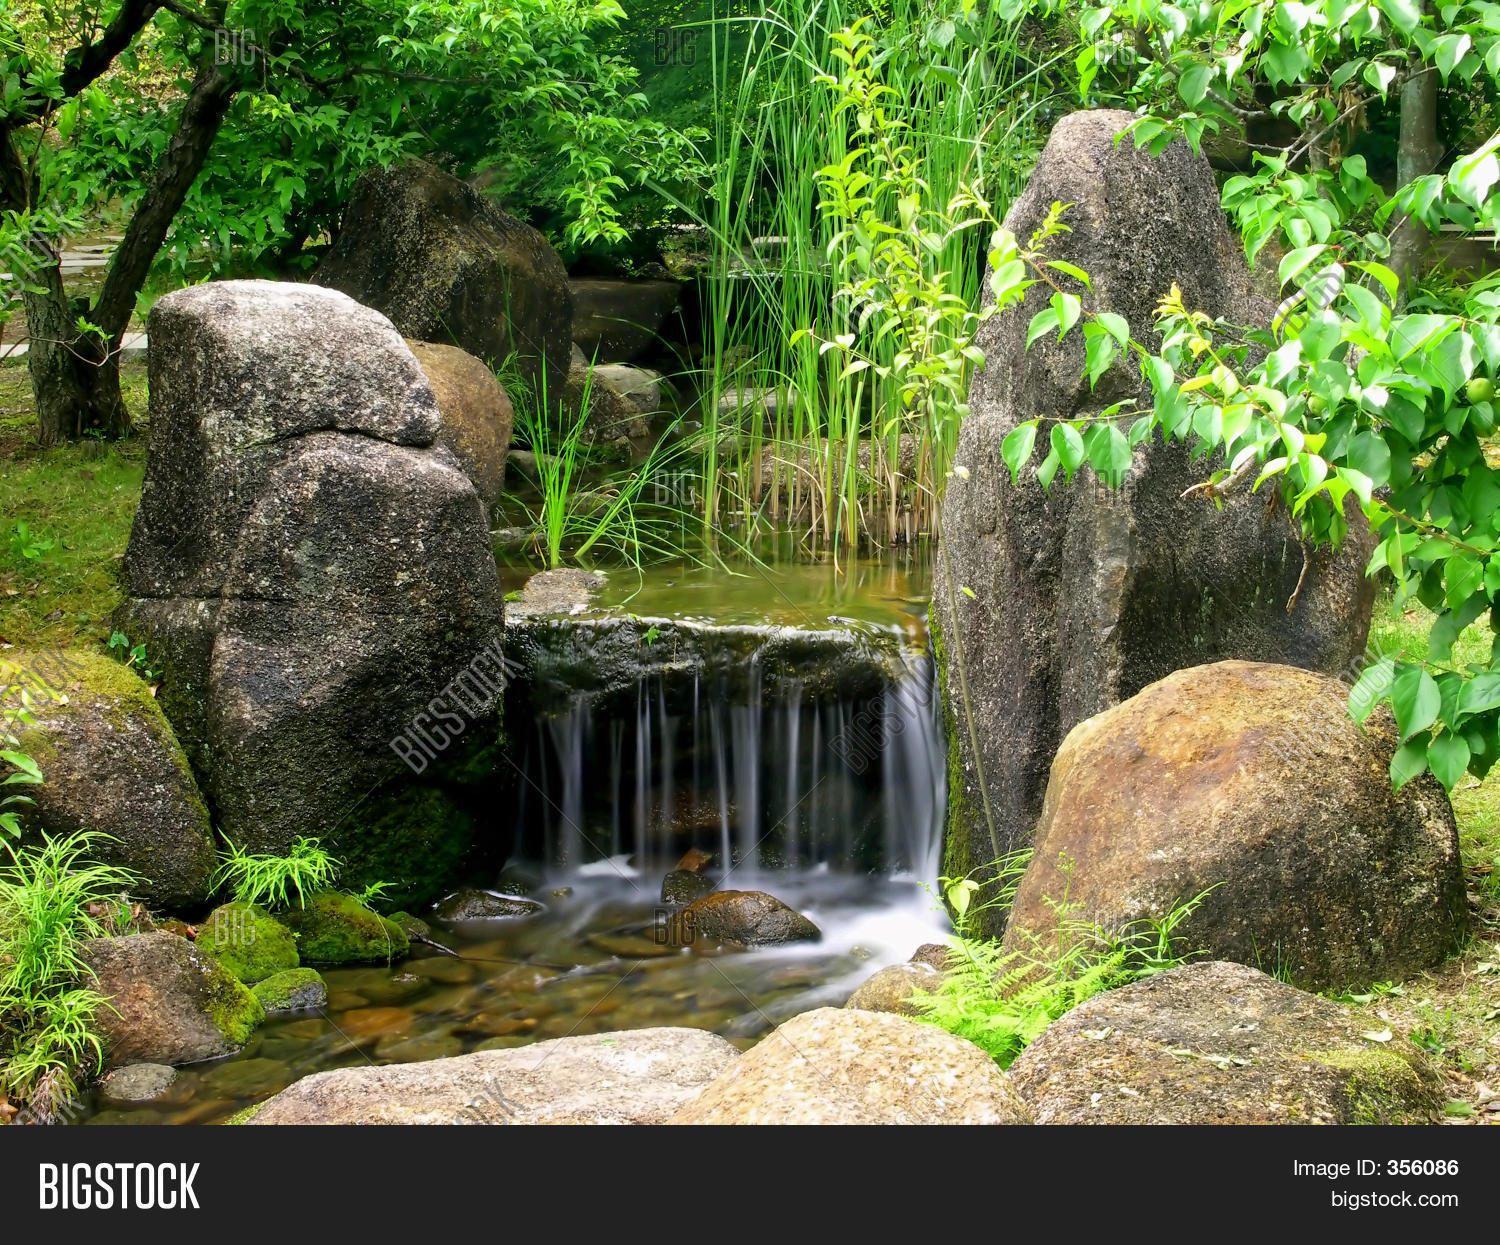 Japanese water garden image photo bigstock for The water garden